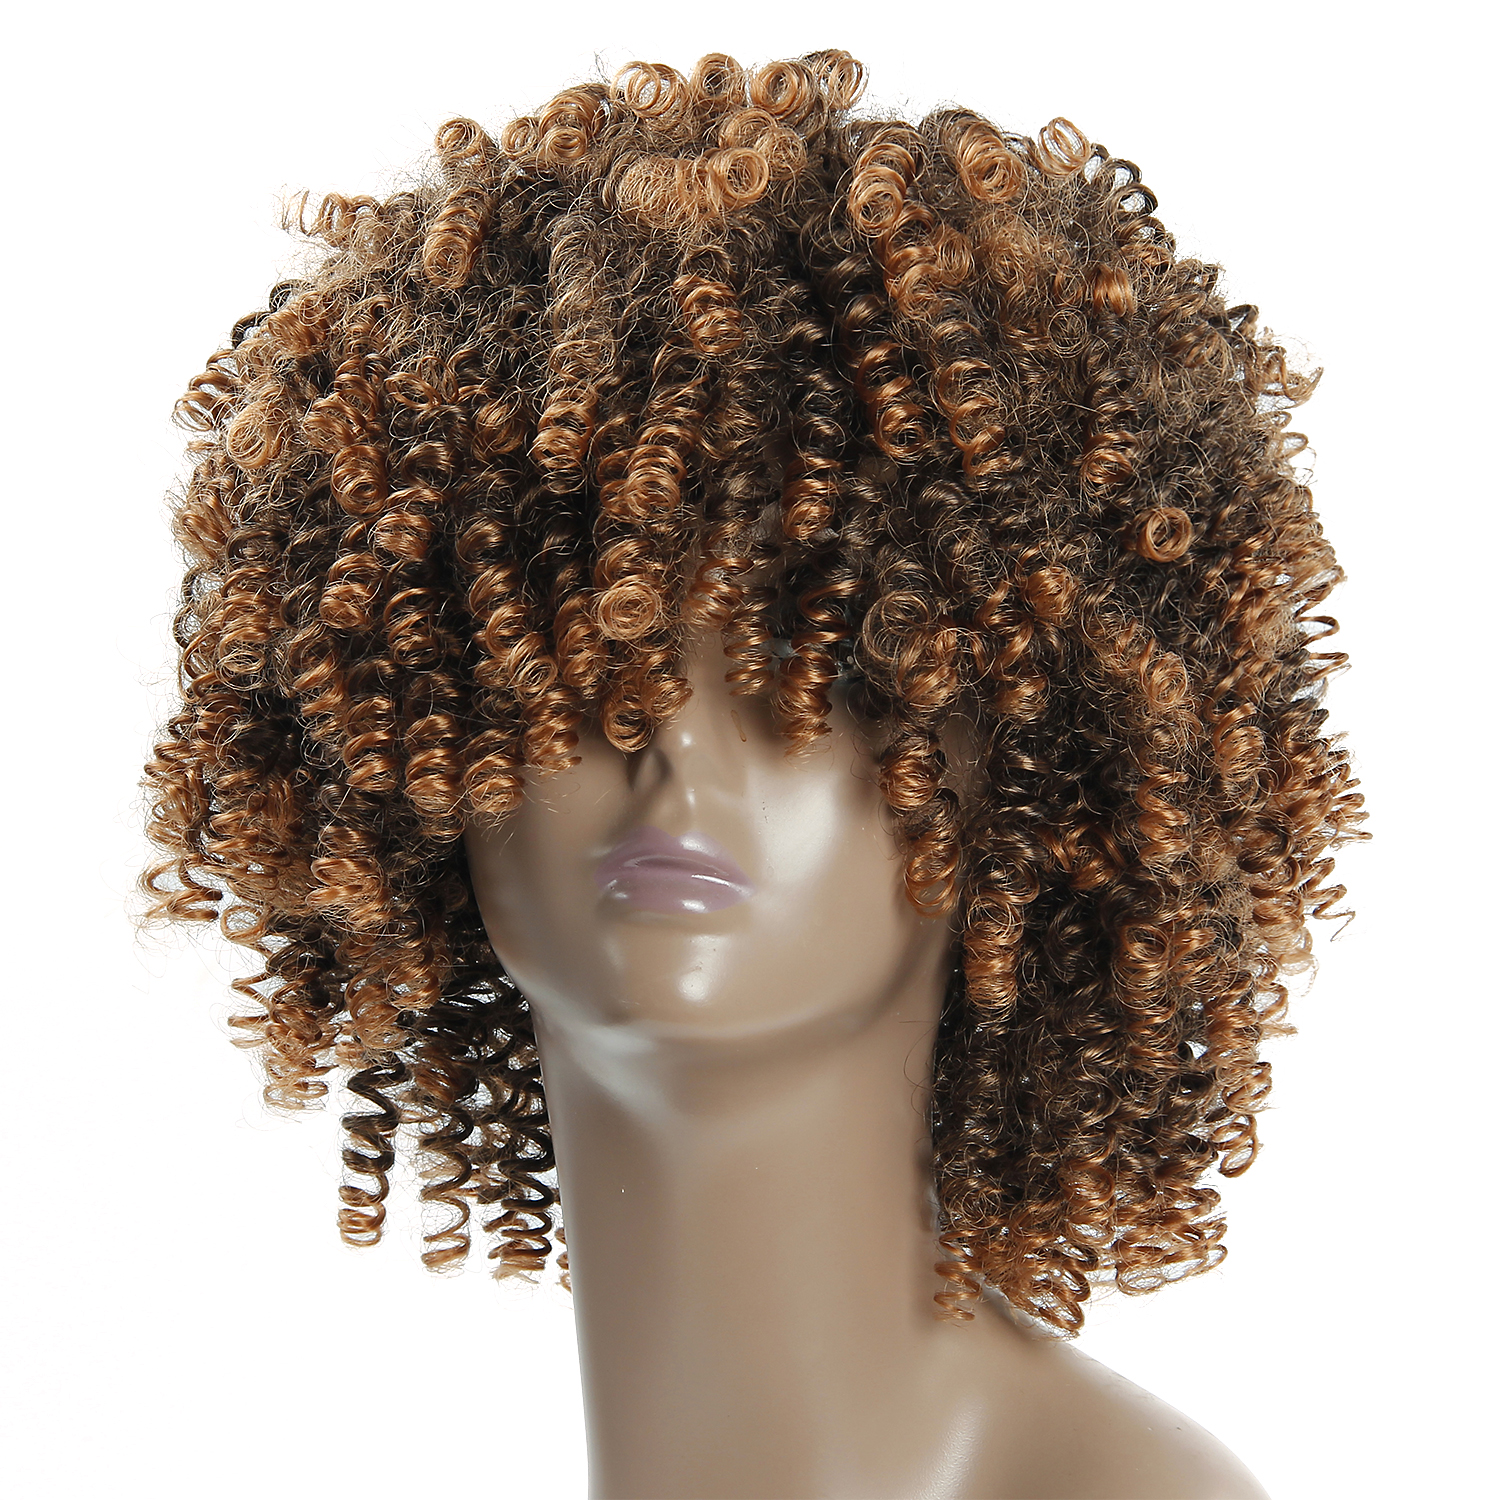 Afro Wig Hair Kinky Curly Synthetic Bangs Wig For Black Women Man Wig Brown Mixed Blonde